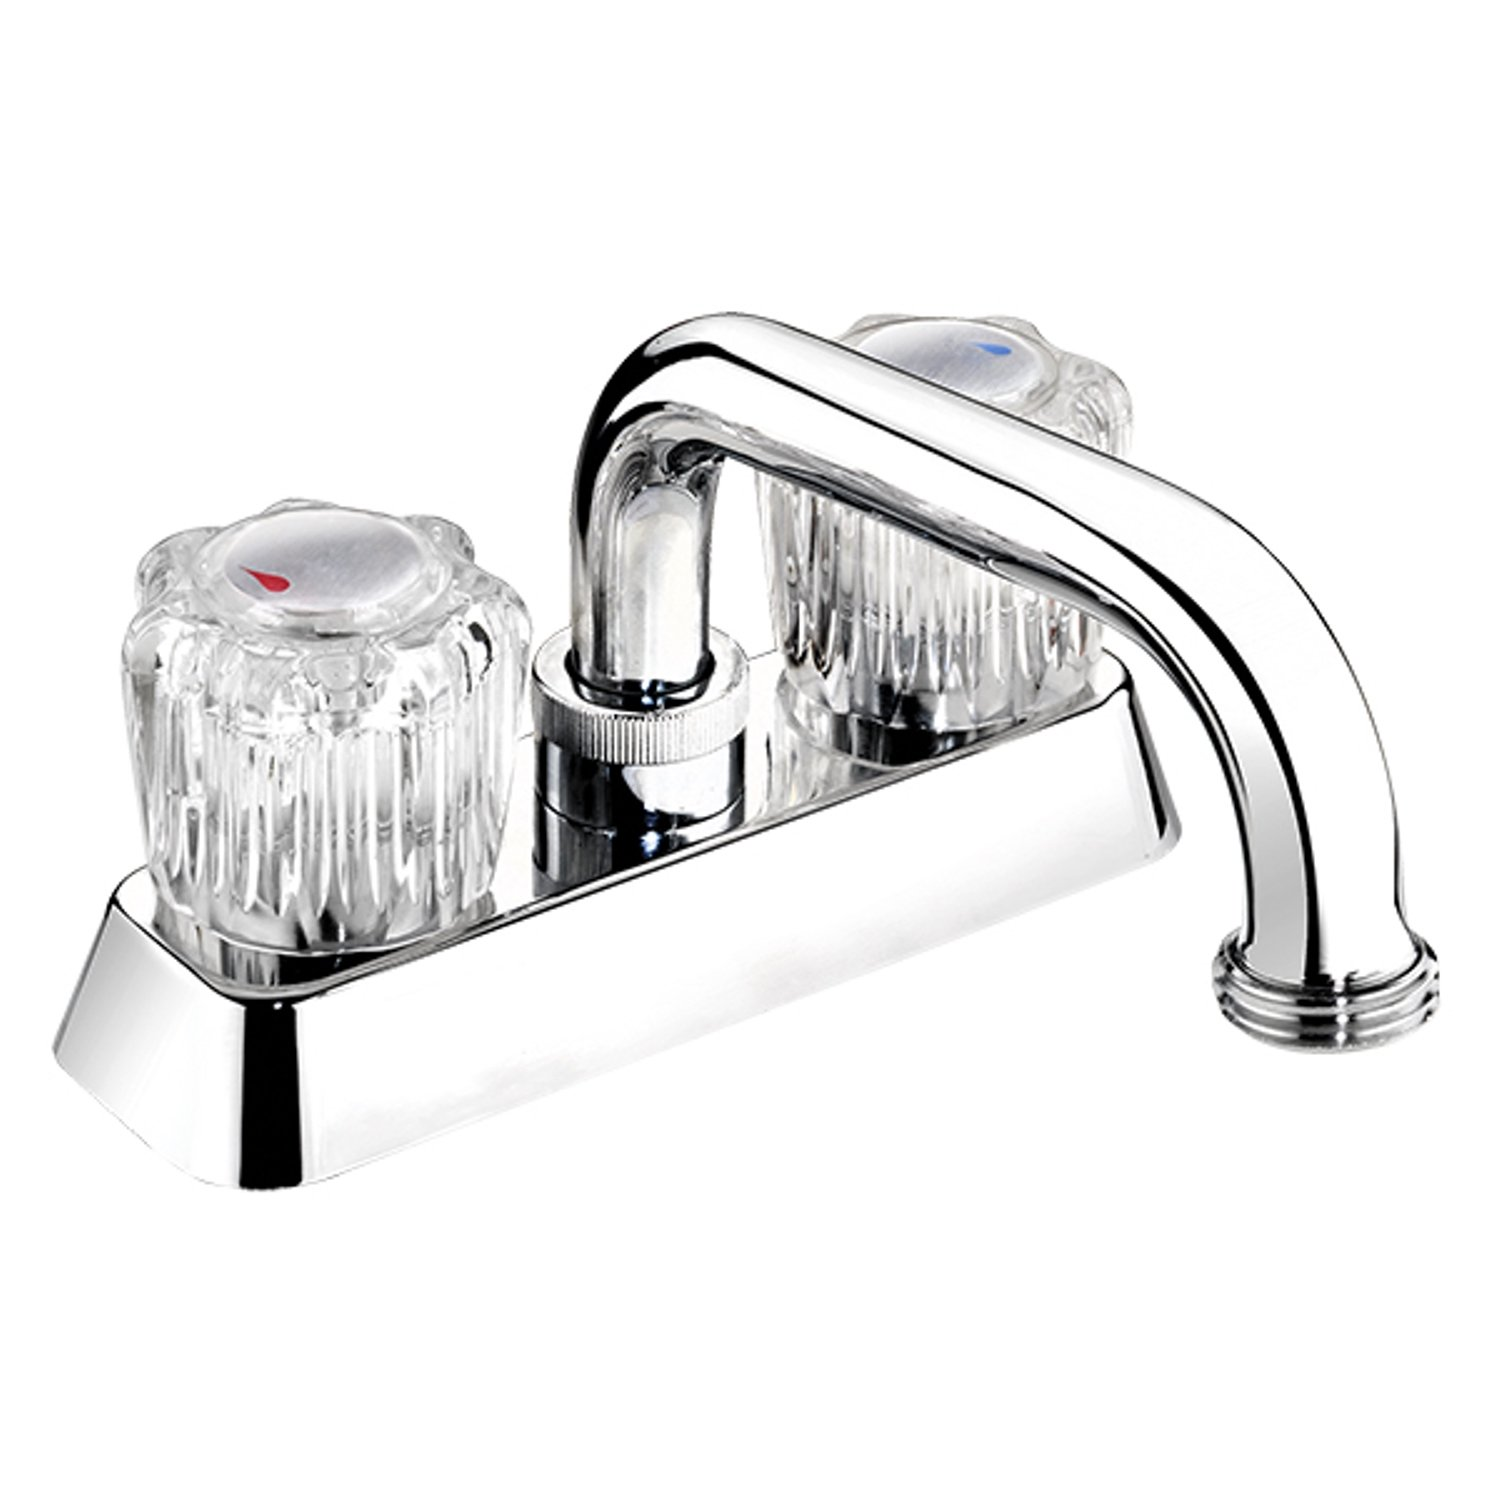 Belanger EBA40WCP Laundry Tub Faucet with Dual Round Acrylic Handles, Polished Chrome by Keeney Manufacturing